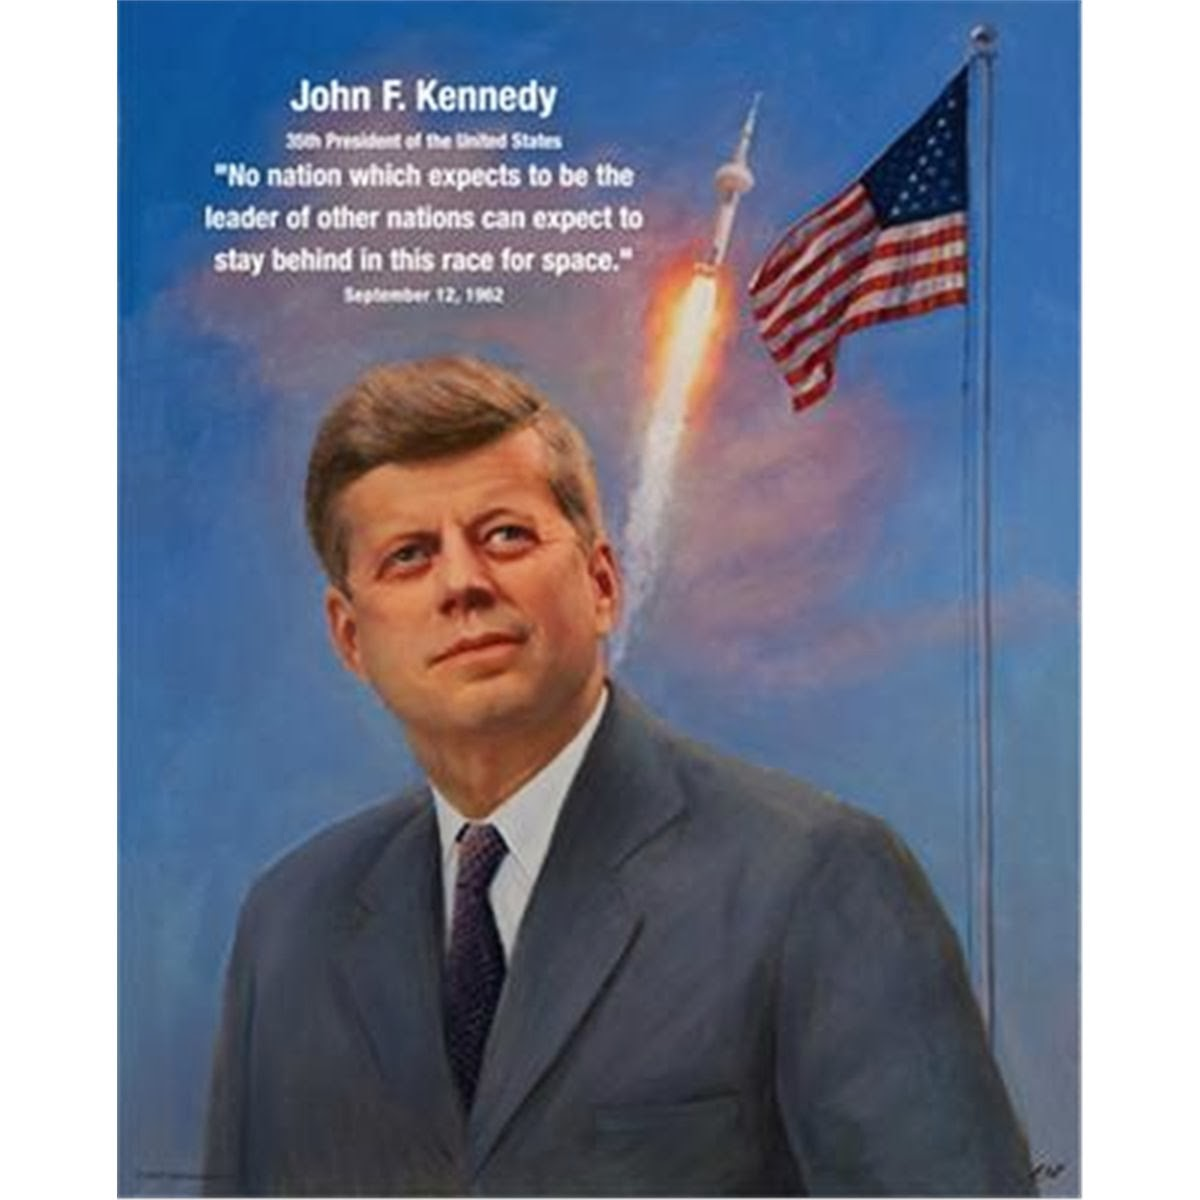 John F Kennedy Quotes: Quotes John F Kennedy Moon. QuotesGram